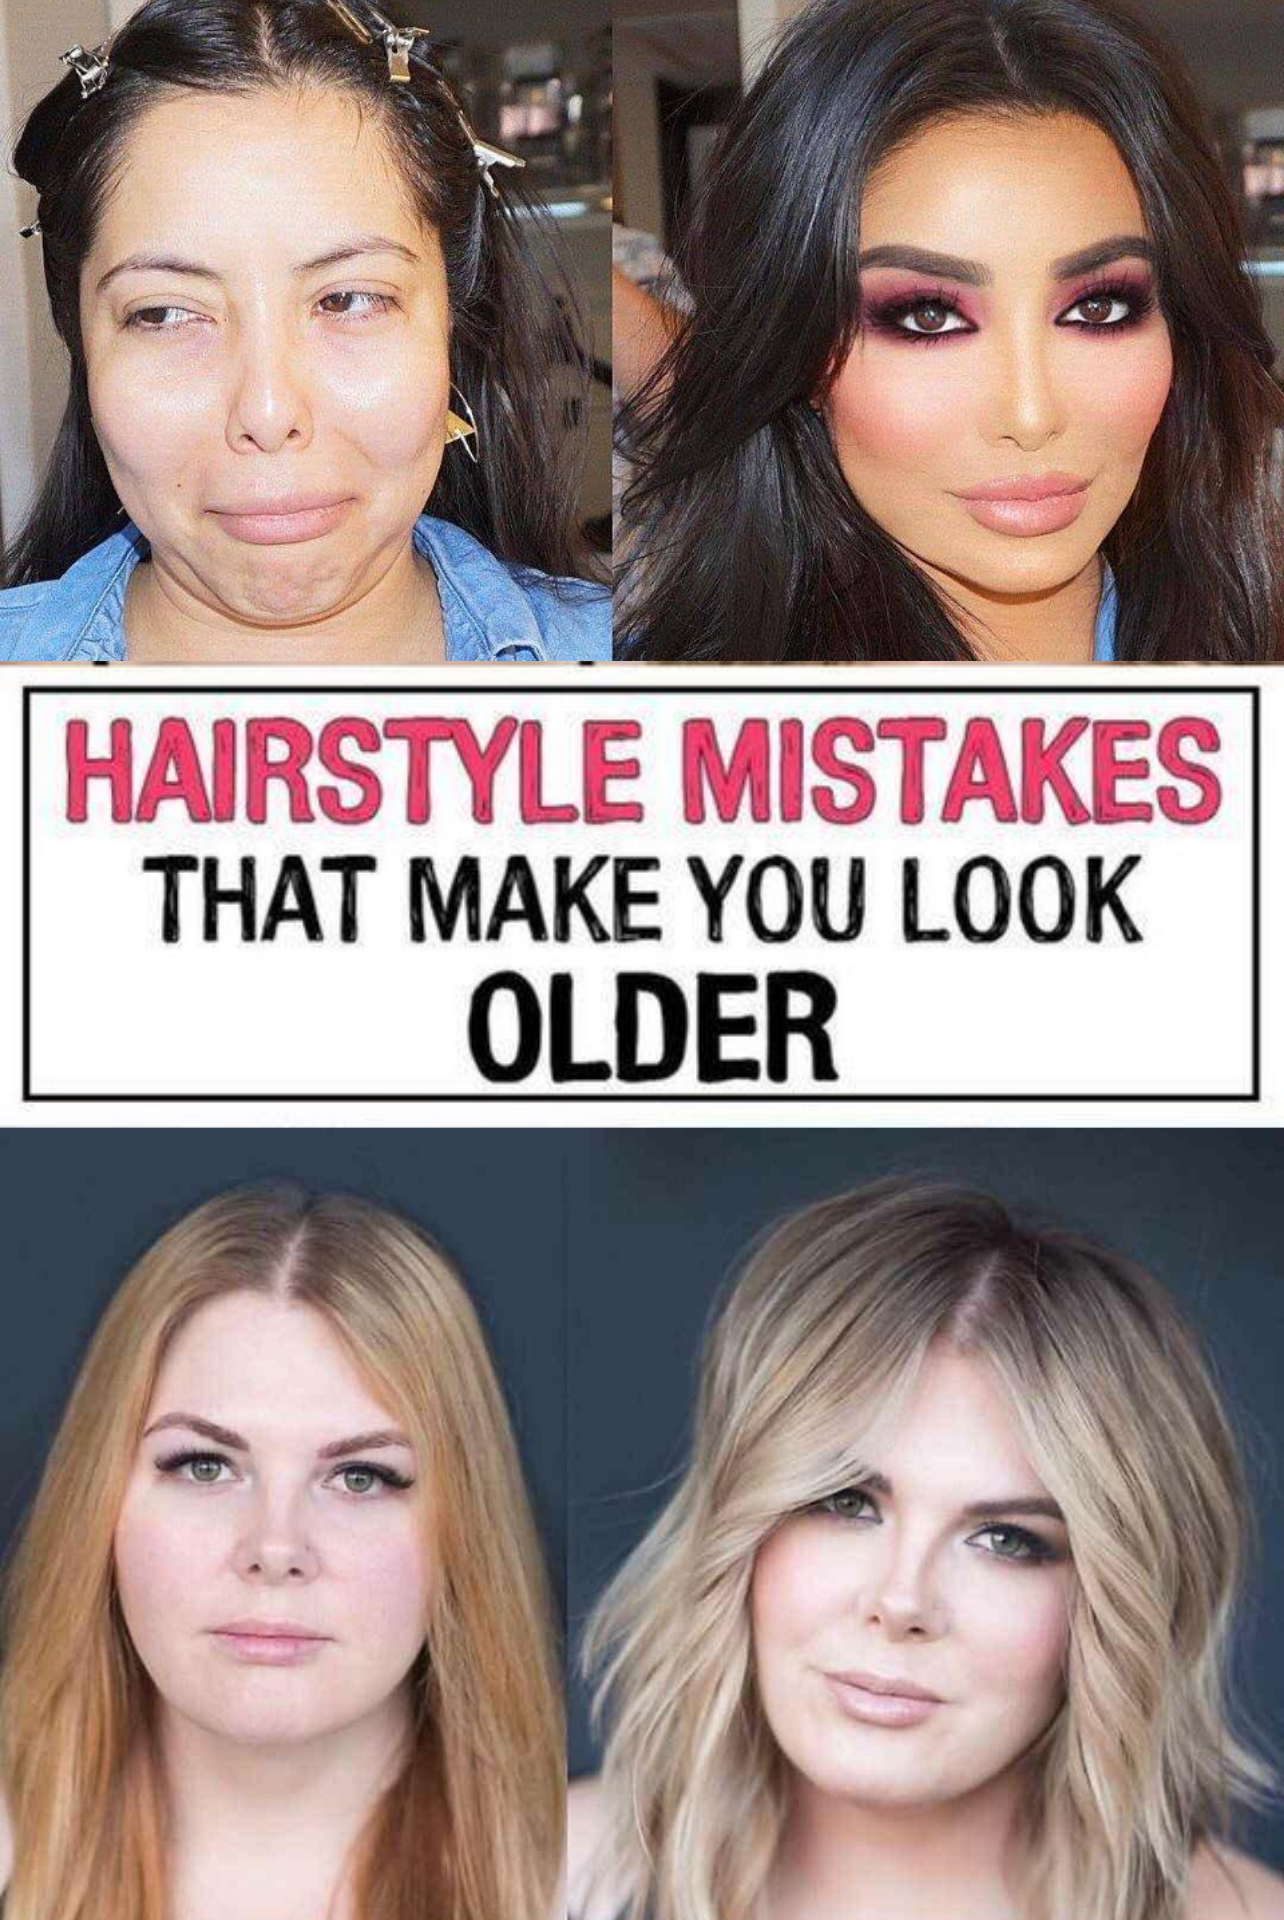 11 Hairstyle Mistakes That Are Aging You In 2020 Hairstyle Hair Mistakes Natural Beauty Tips